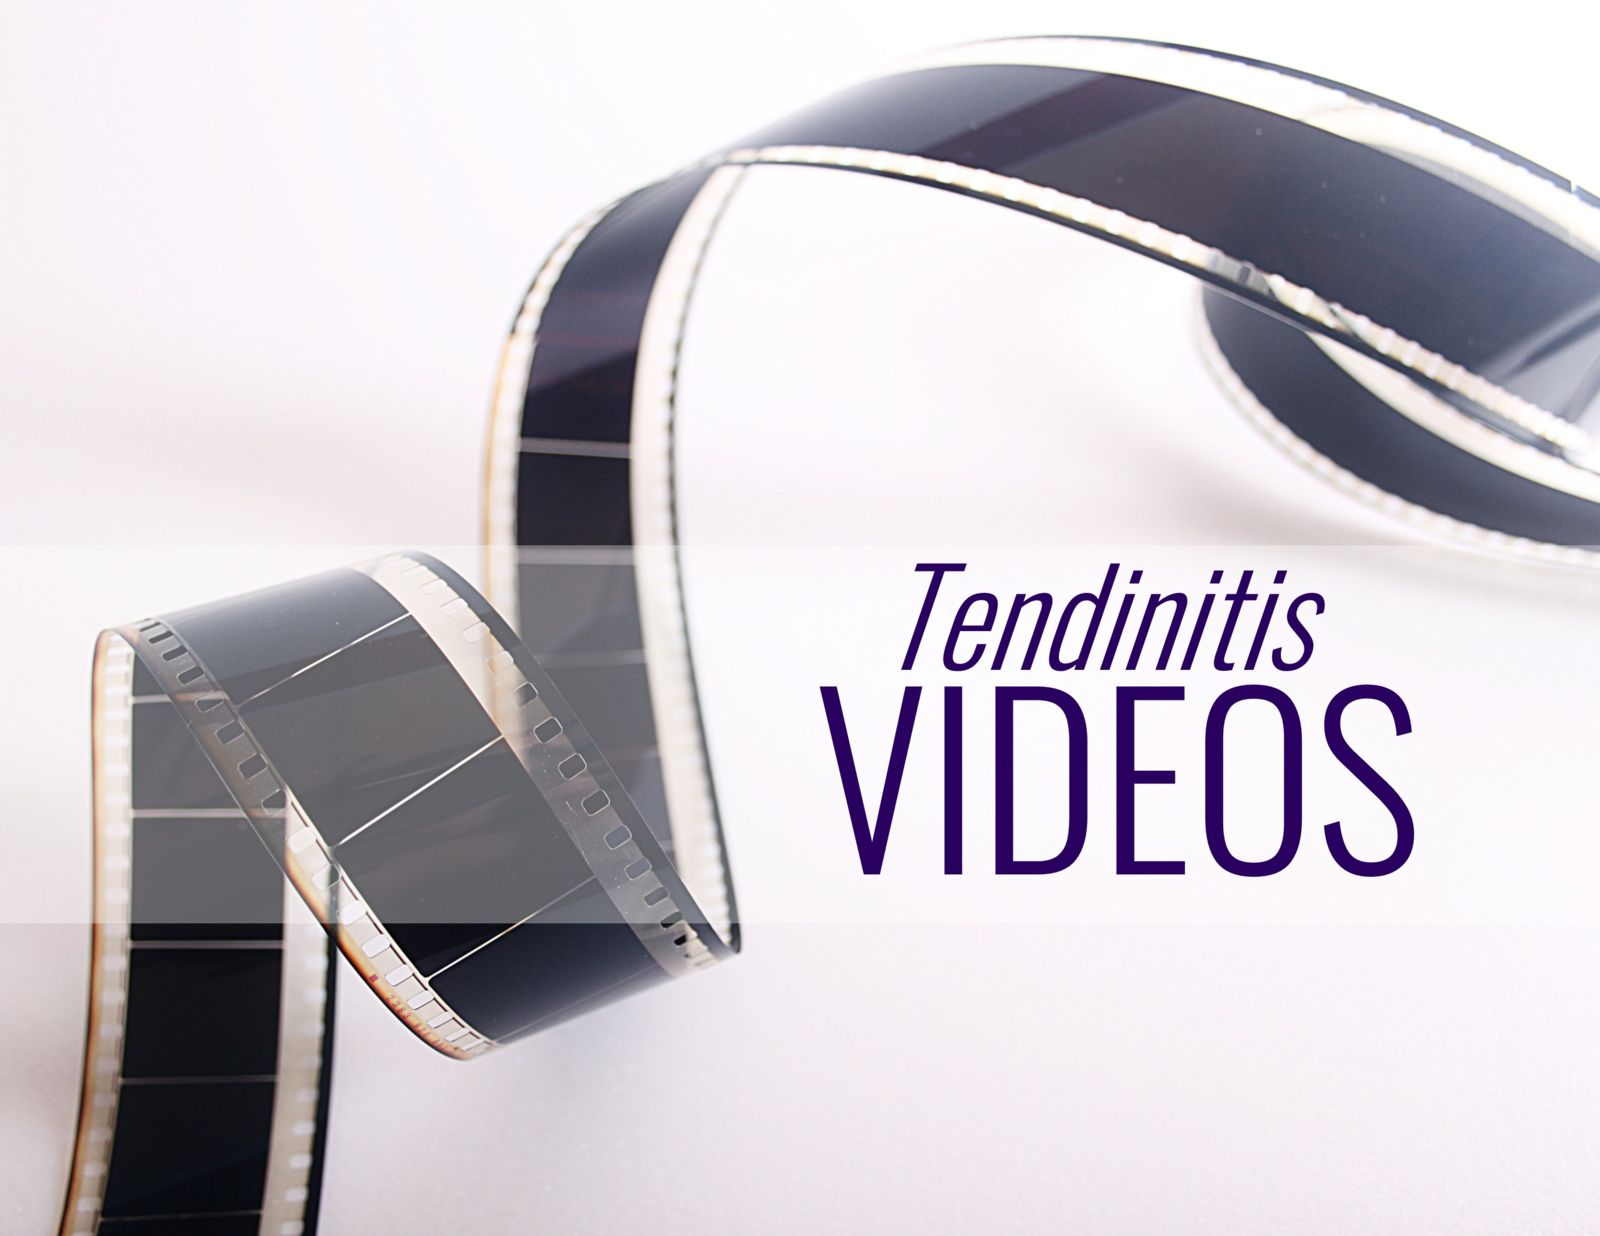 film reel and the words Tendinitis Videos